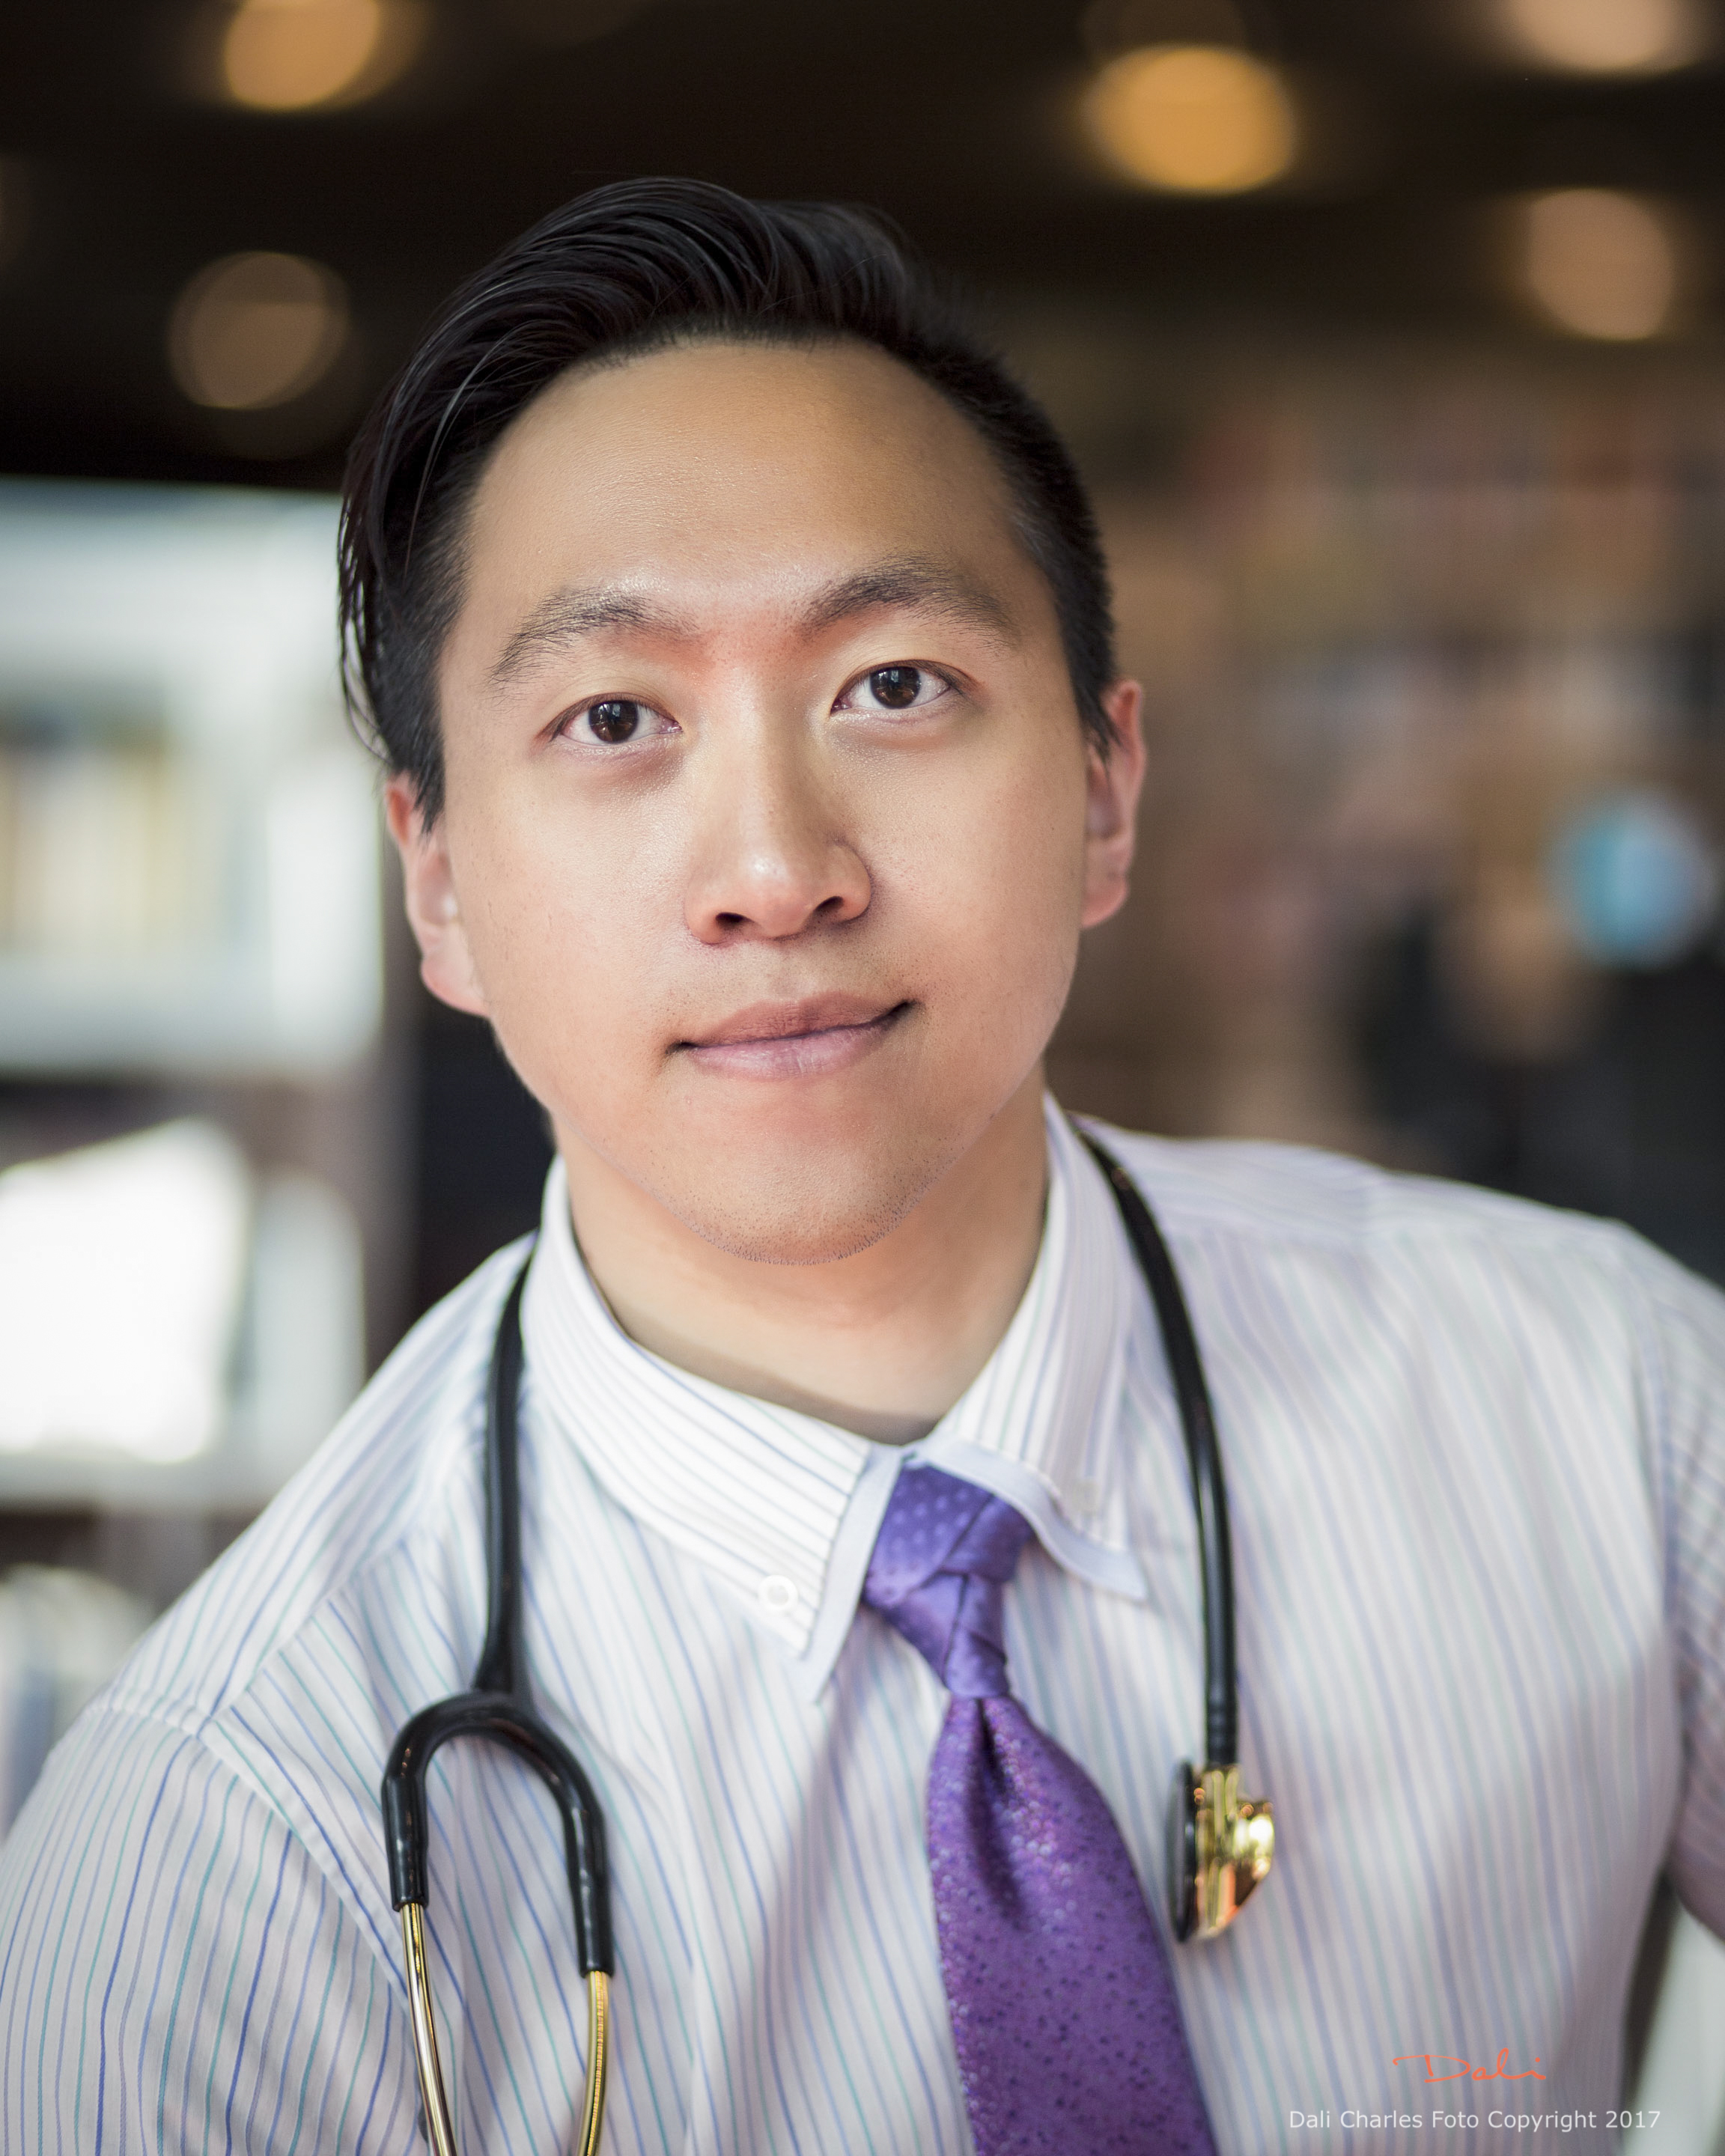 Dr.-Kevin-Kuo-at-New-Health-Medical-Center